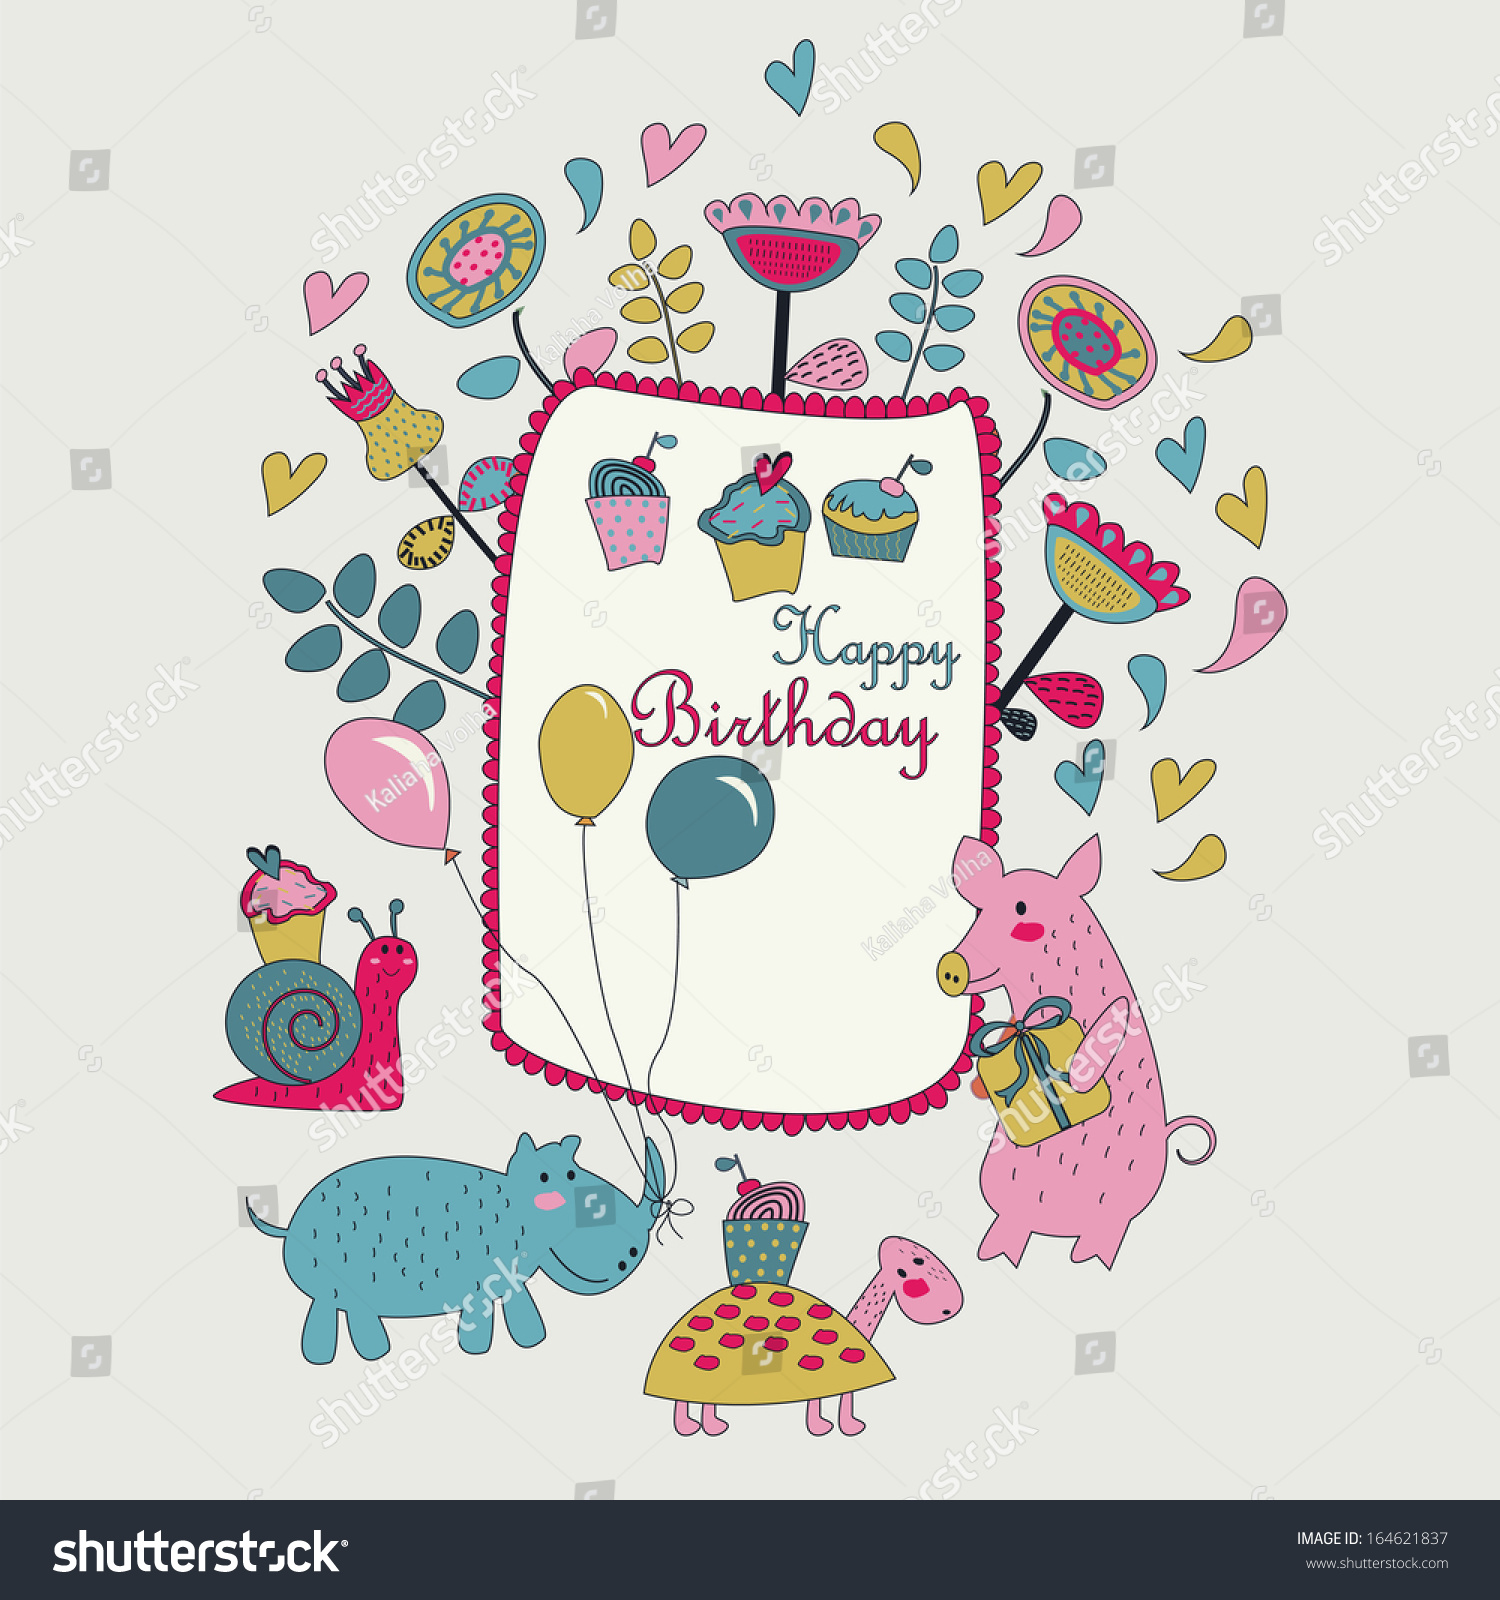 Happy birthday greeting card cute snail stock vector 164621837 happy birthday greeting card with cute snail pig turtle and hippo with balloons in dhlflorist Choice Image